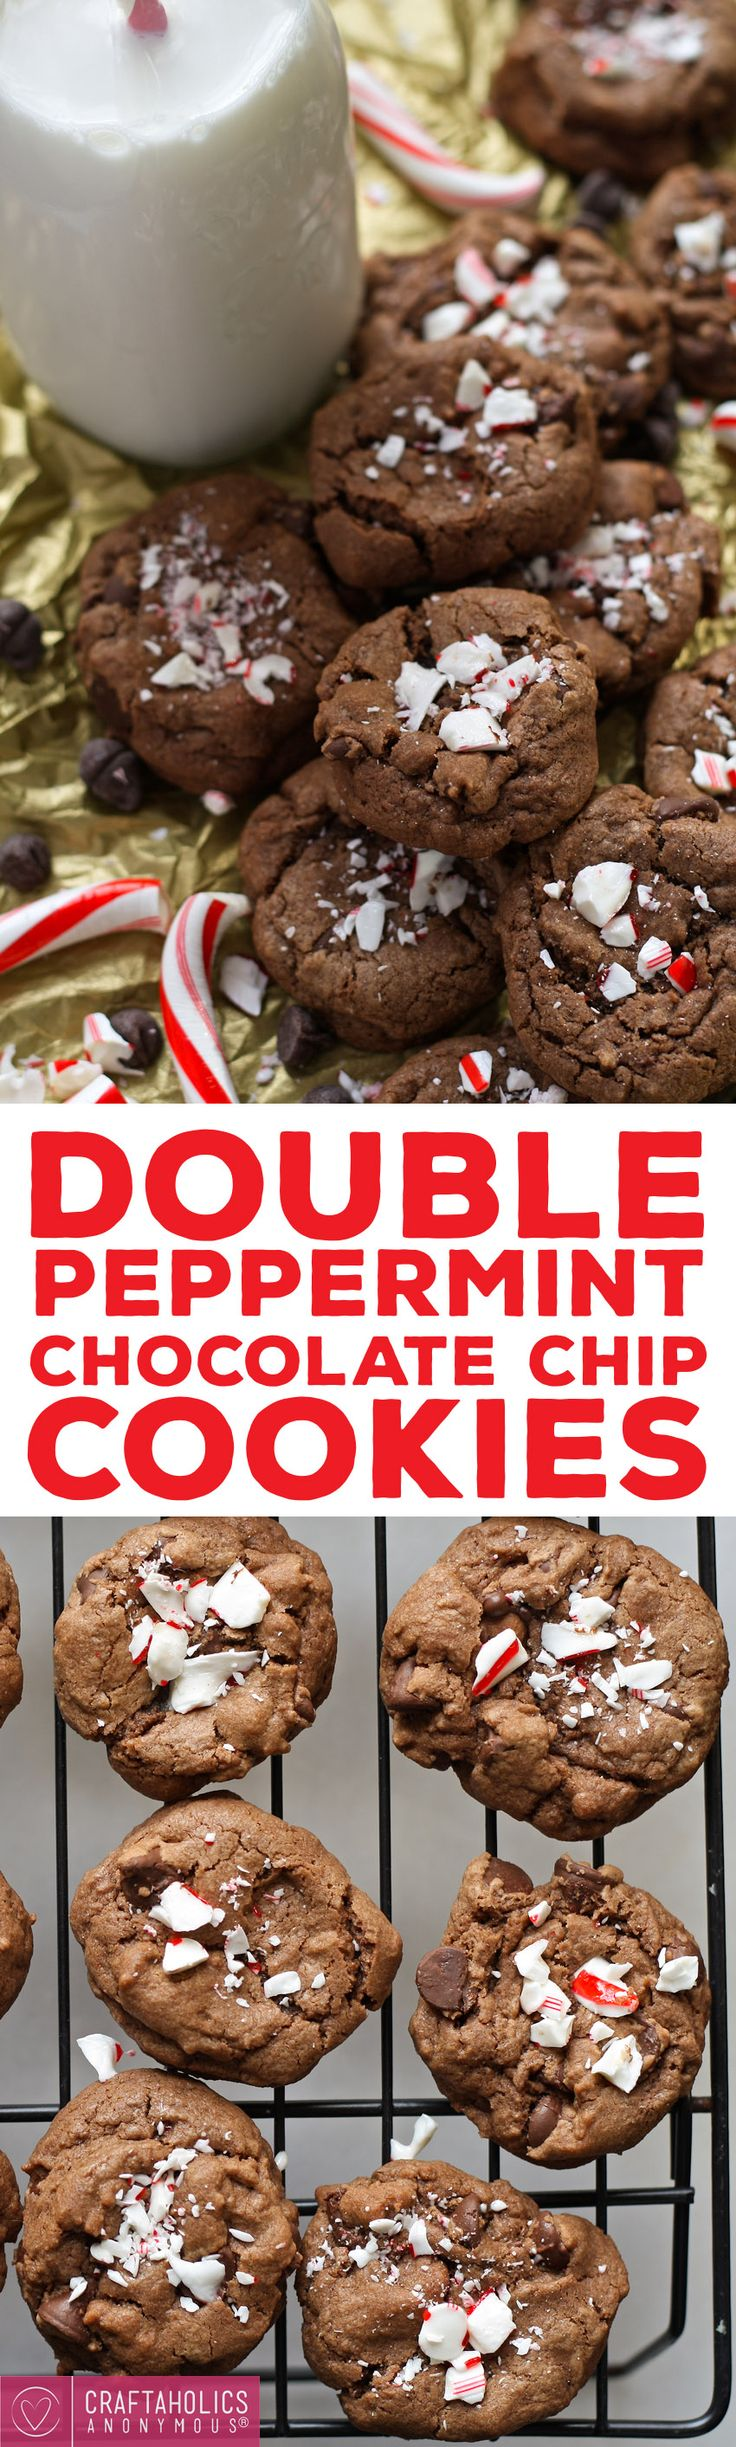 Double Peppermint Chocolate Chip Cookies recipe - Gooey, chewy and AMAZING Christmas cookies!